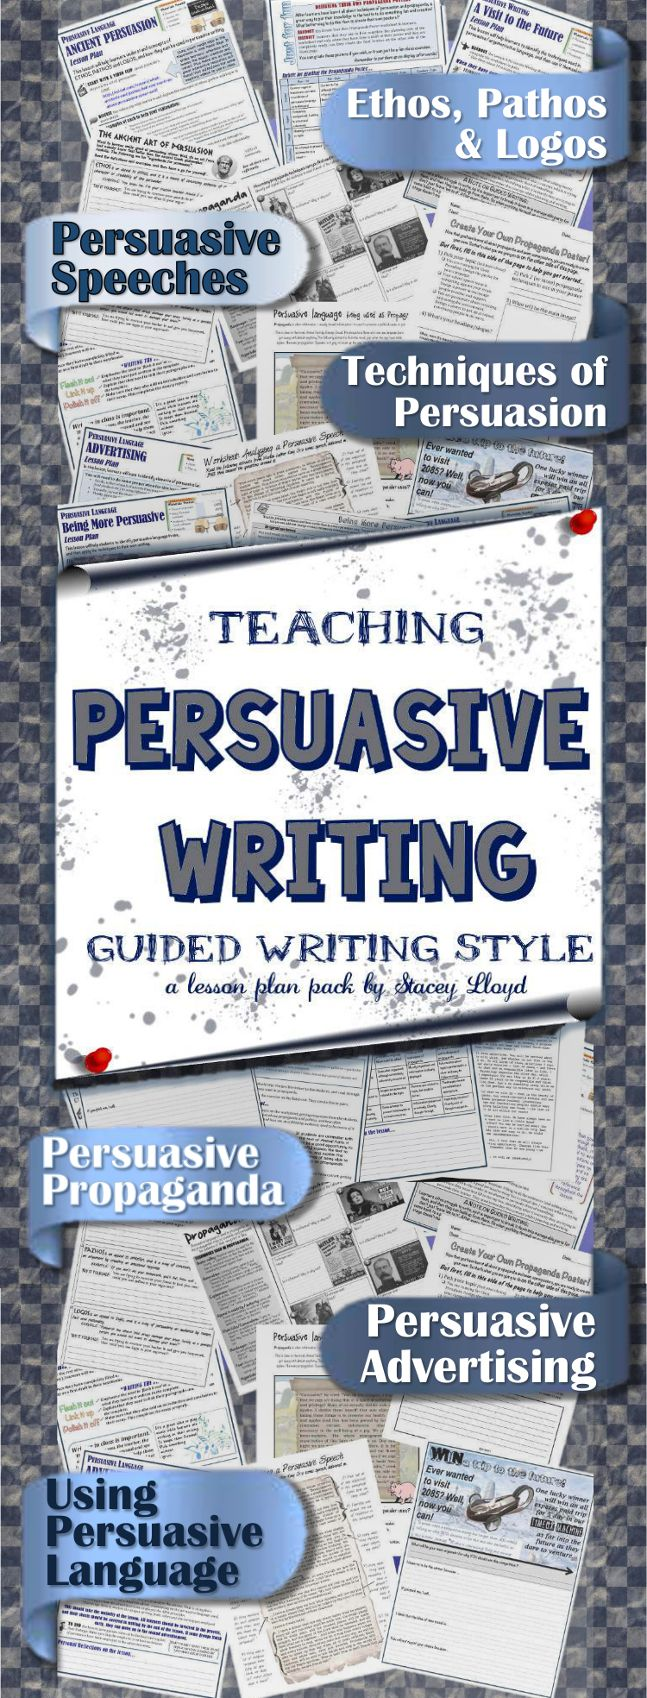 ($5) This comprehensive persuasive writing pack contains: - 6 step-by-step lesson plans (each one guides the teacher in the most effective way to teach the concepts of the lesson, and provides helpful tips and hints for effective practice). - A variety of attractive persuasive writing worksheets and hand-outs which accompany the lesson plans. - A list of 40 persuasive writing topics and prompts.  - A beautiful persuasive writing poster to brighten up your classroom!